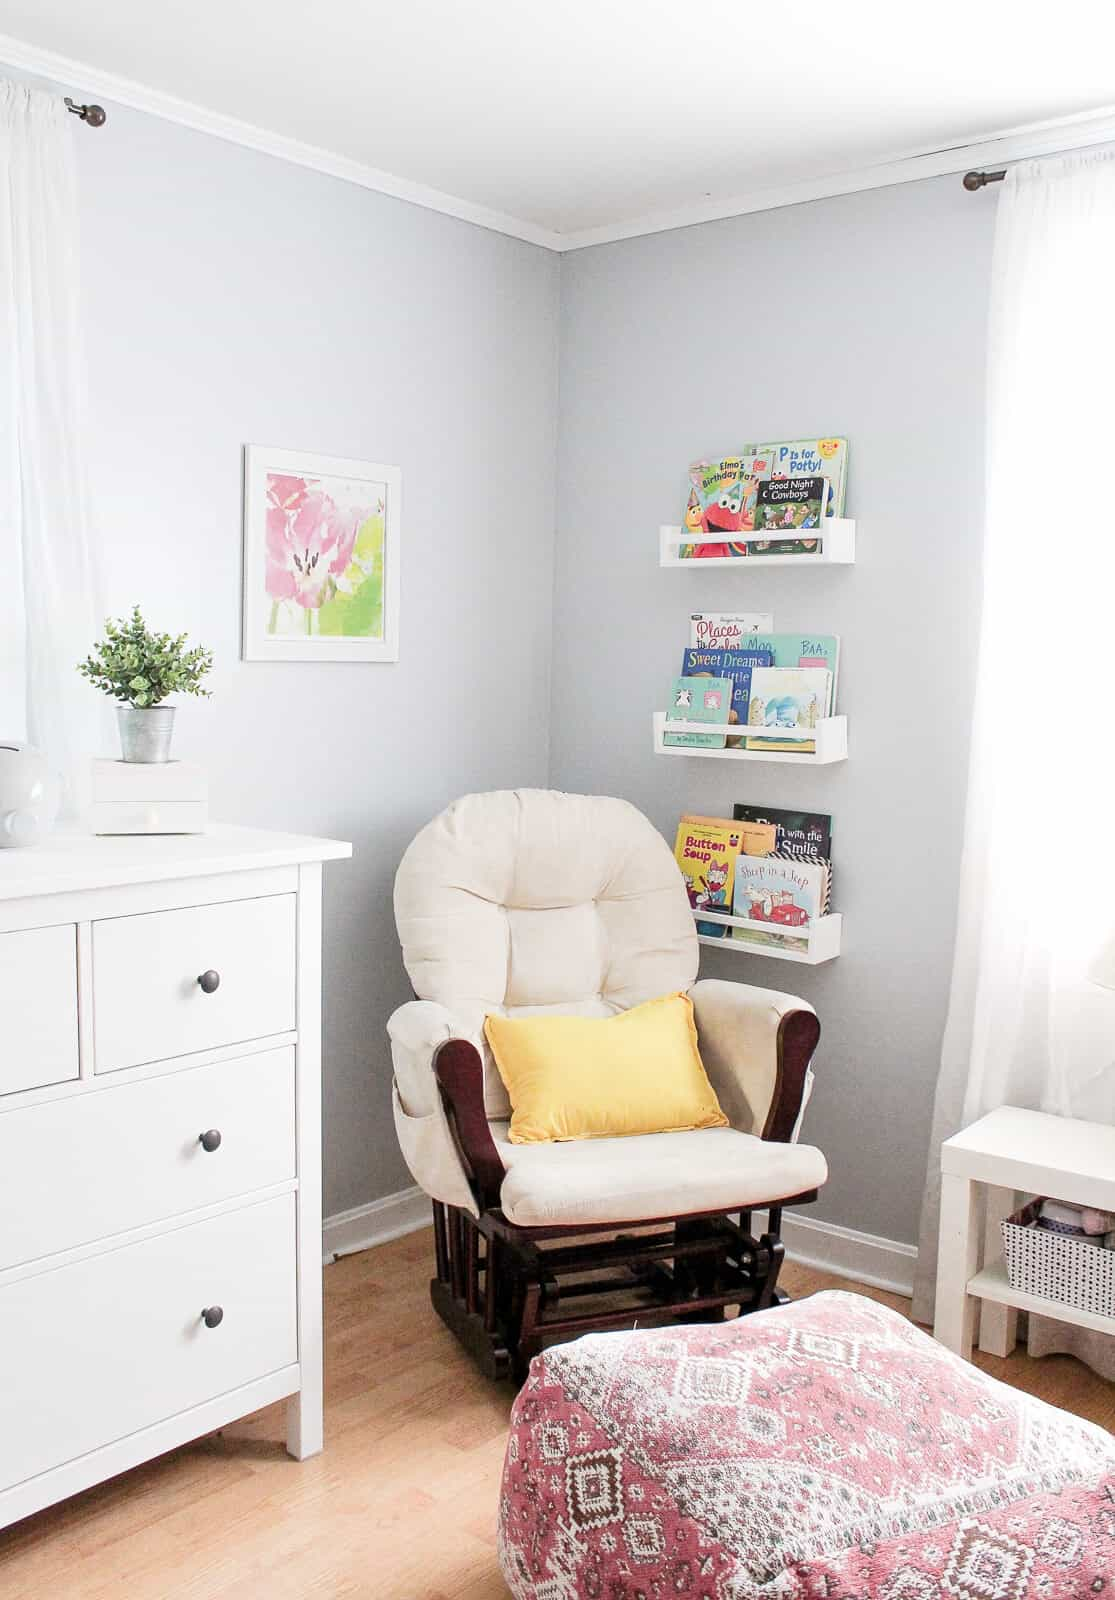 A rocking chair and books on the wall in a nursery